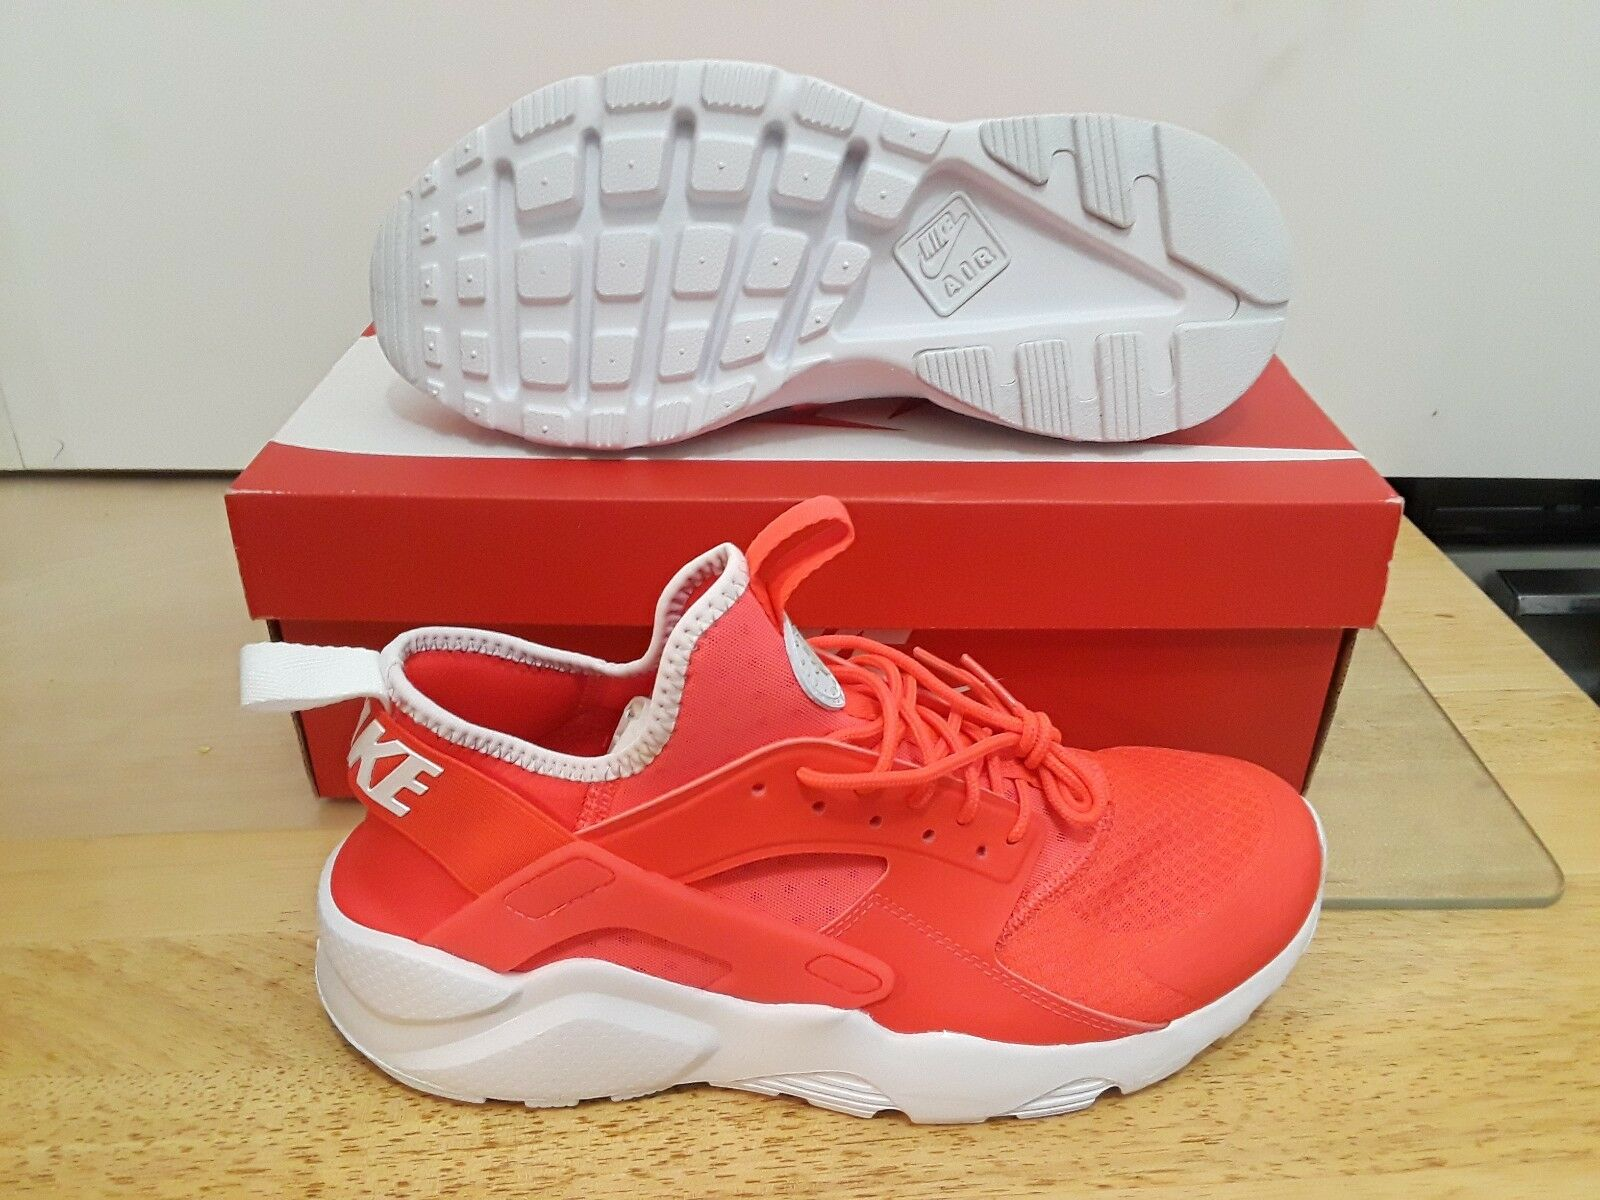 NIKE MEN'S AIR HUARACHE RUN ULTRA CRIMSON GREY WHT 819685 602 S1ZE  9